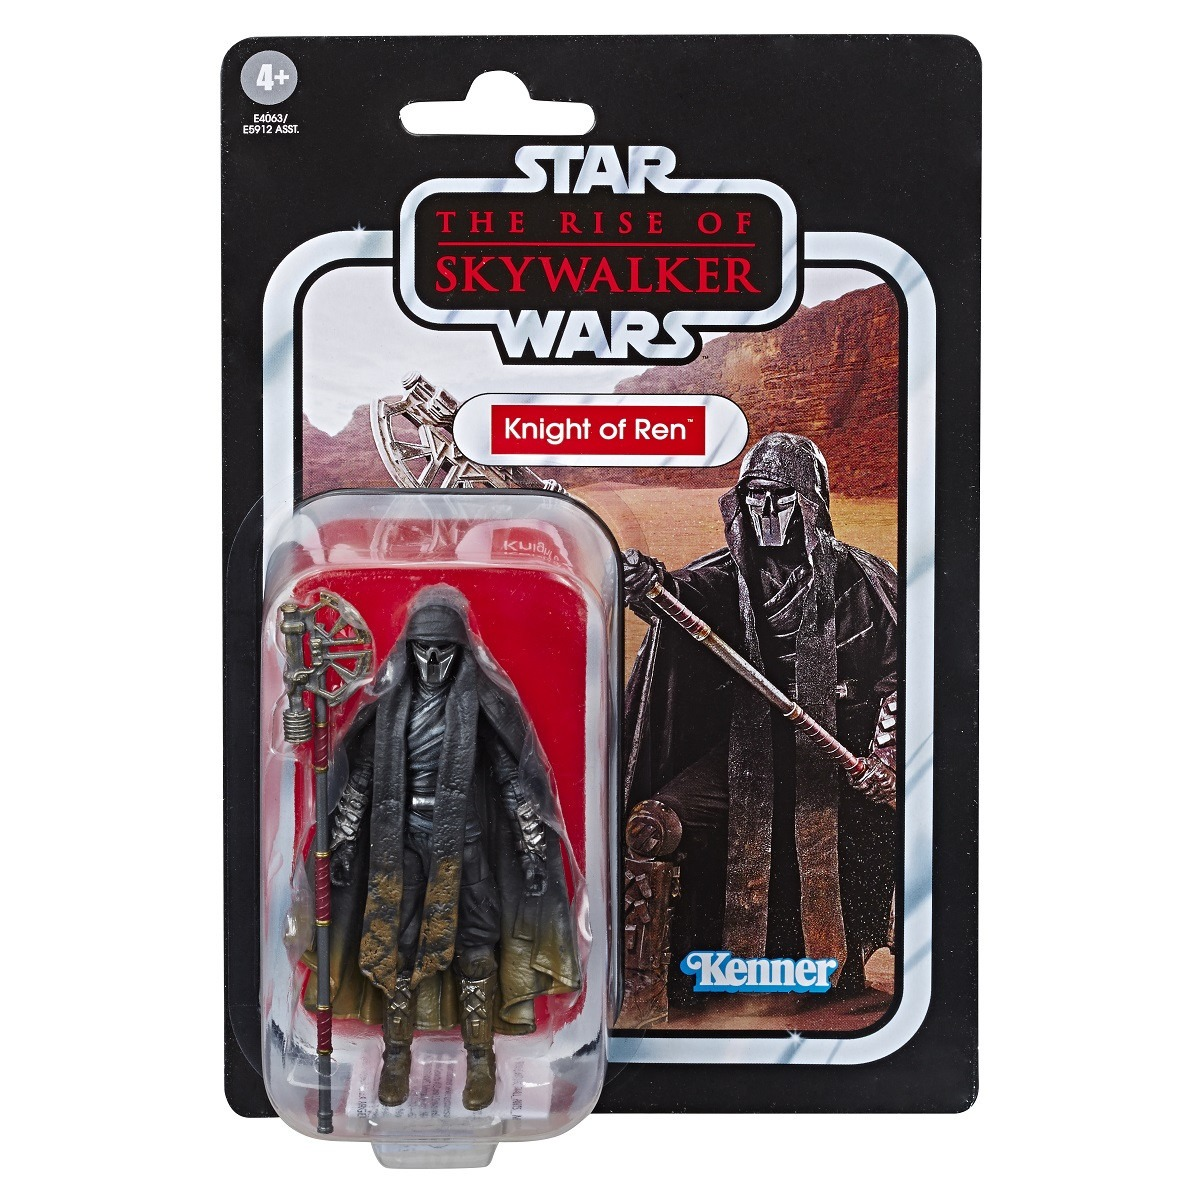 Hasbro unveils new Star Wars: The Rise of Skywalker, The Mandalorian, Galaxy of Adventures, and Jedi: Fallen Order action figures